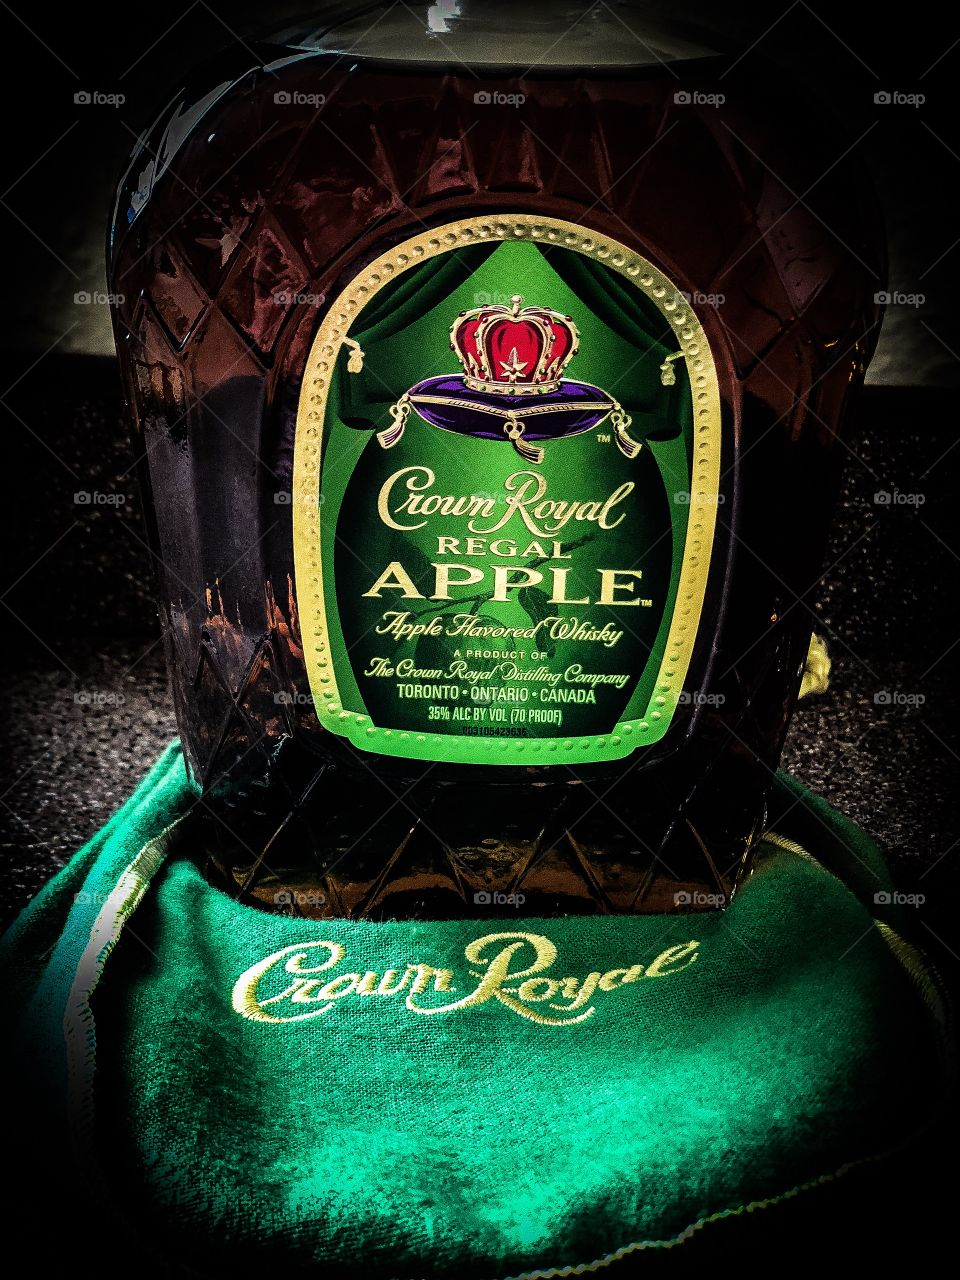 Out of all the liquors in this world, make sure that you try crown royal because it never will disappoint 💋